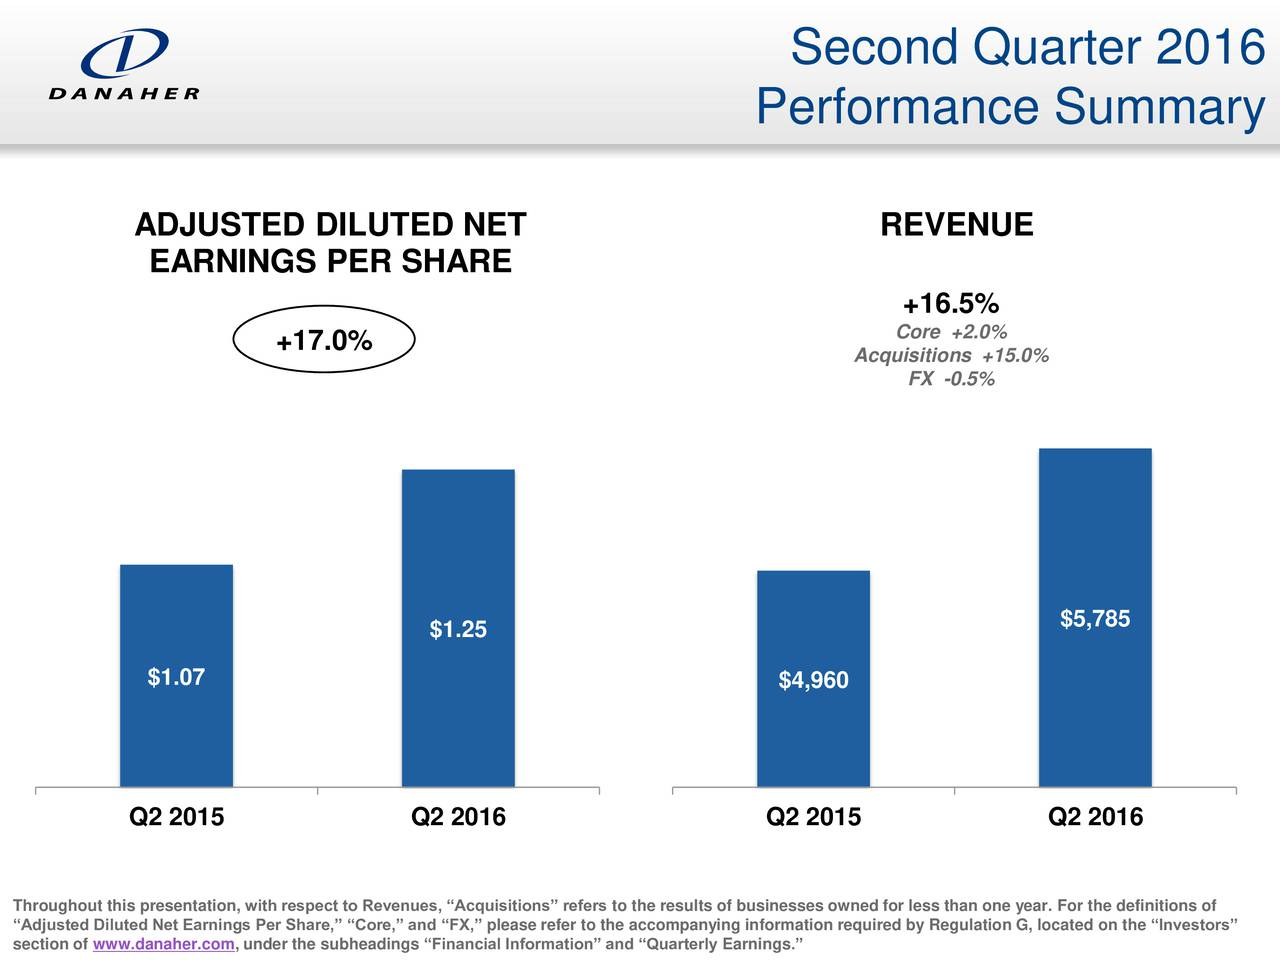 Performance Summary ADJUSTED DILUTED NET REVENUE EARNINGS PER SHARE +16.5% +17.0% Core +2.0% Acquisitions +15.0% FX -0.5% $5,785 $1.25 $1.07 $4,960 Q2 2015 Q2 2016 Q2 2015 Q2 2016 Throughout this presentation, with respect to Revenues, Acquisitions refers to the results of businesses owned for less than one year. For the definitions of Adjusted Diluted Net Earnings Per Share, Core, and FX, please refer to the accompanying information required by Regulation G, located on the Investors